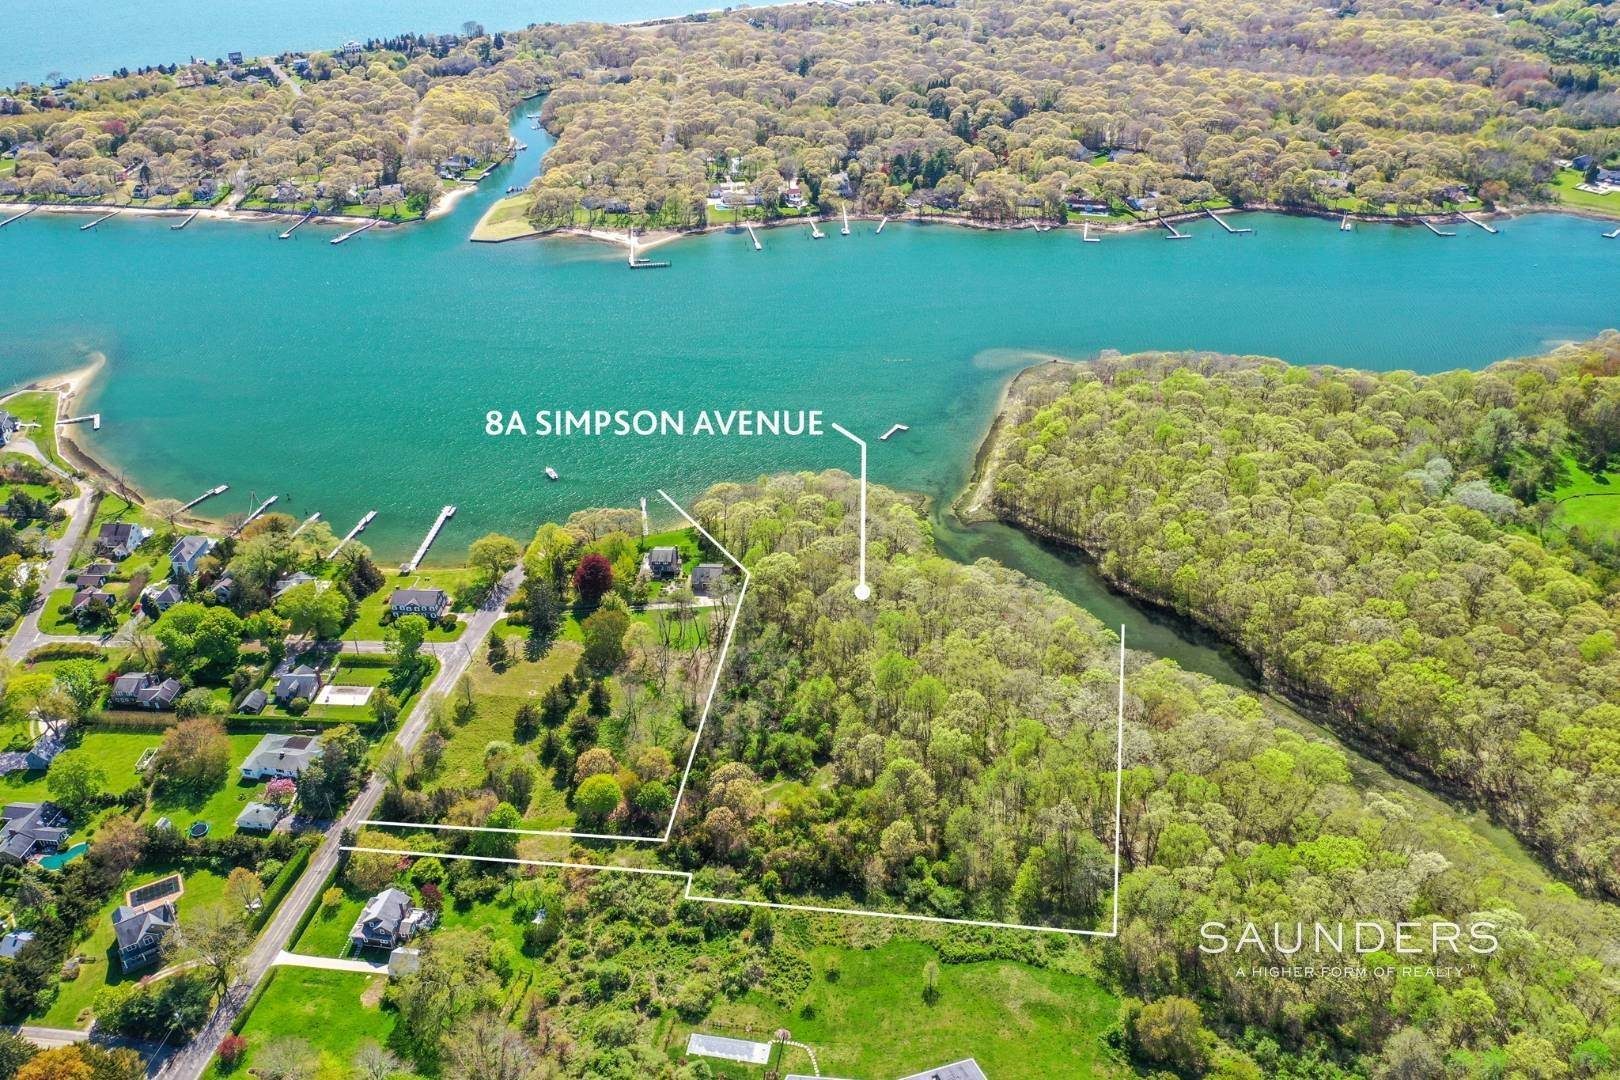 Land at 5+ Acres Pristine Sunset Harborfront On Shelter Island 8A Simpson Avenue, Shelter Island Heights, Shelter Island, NY 11964